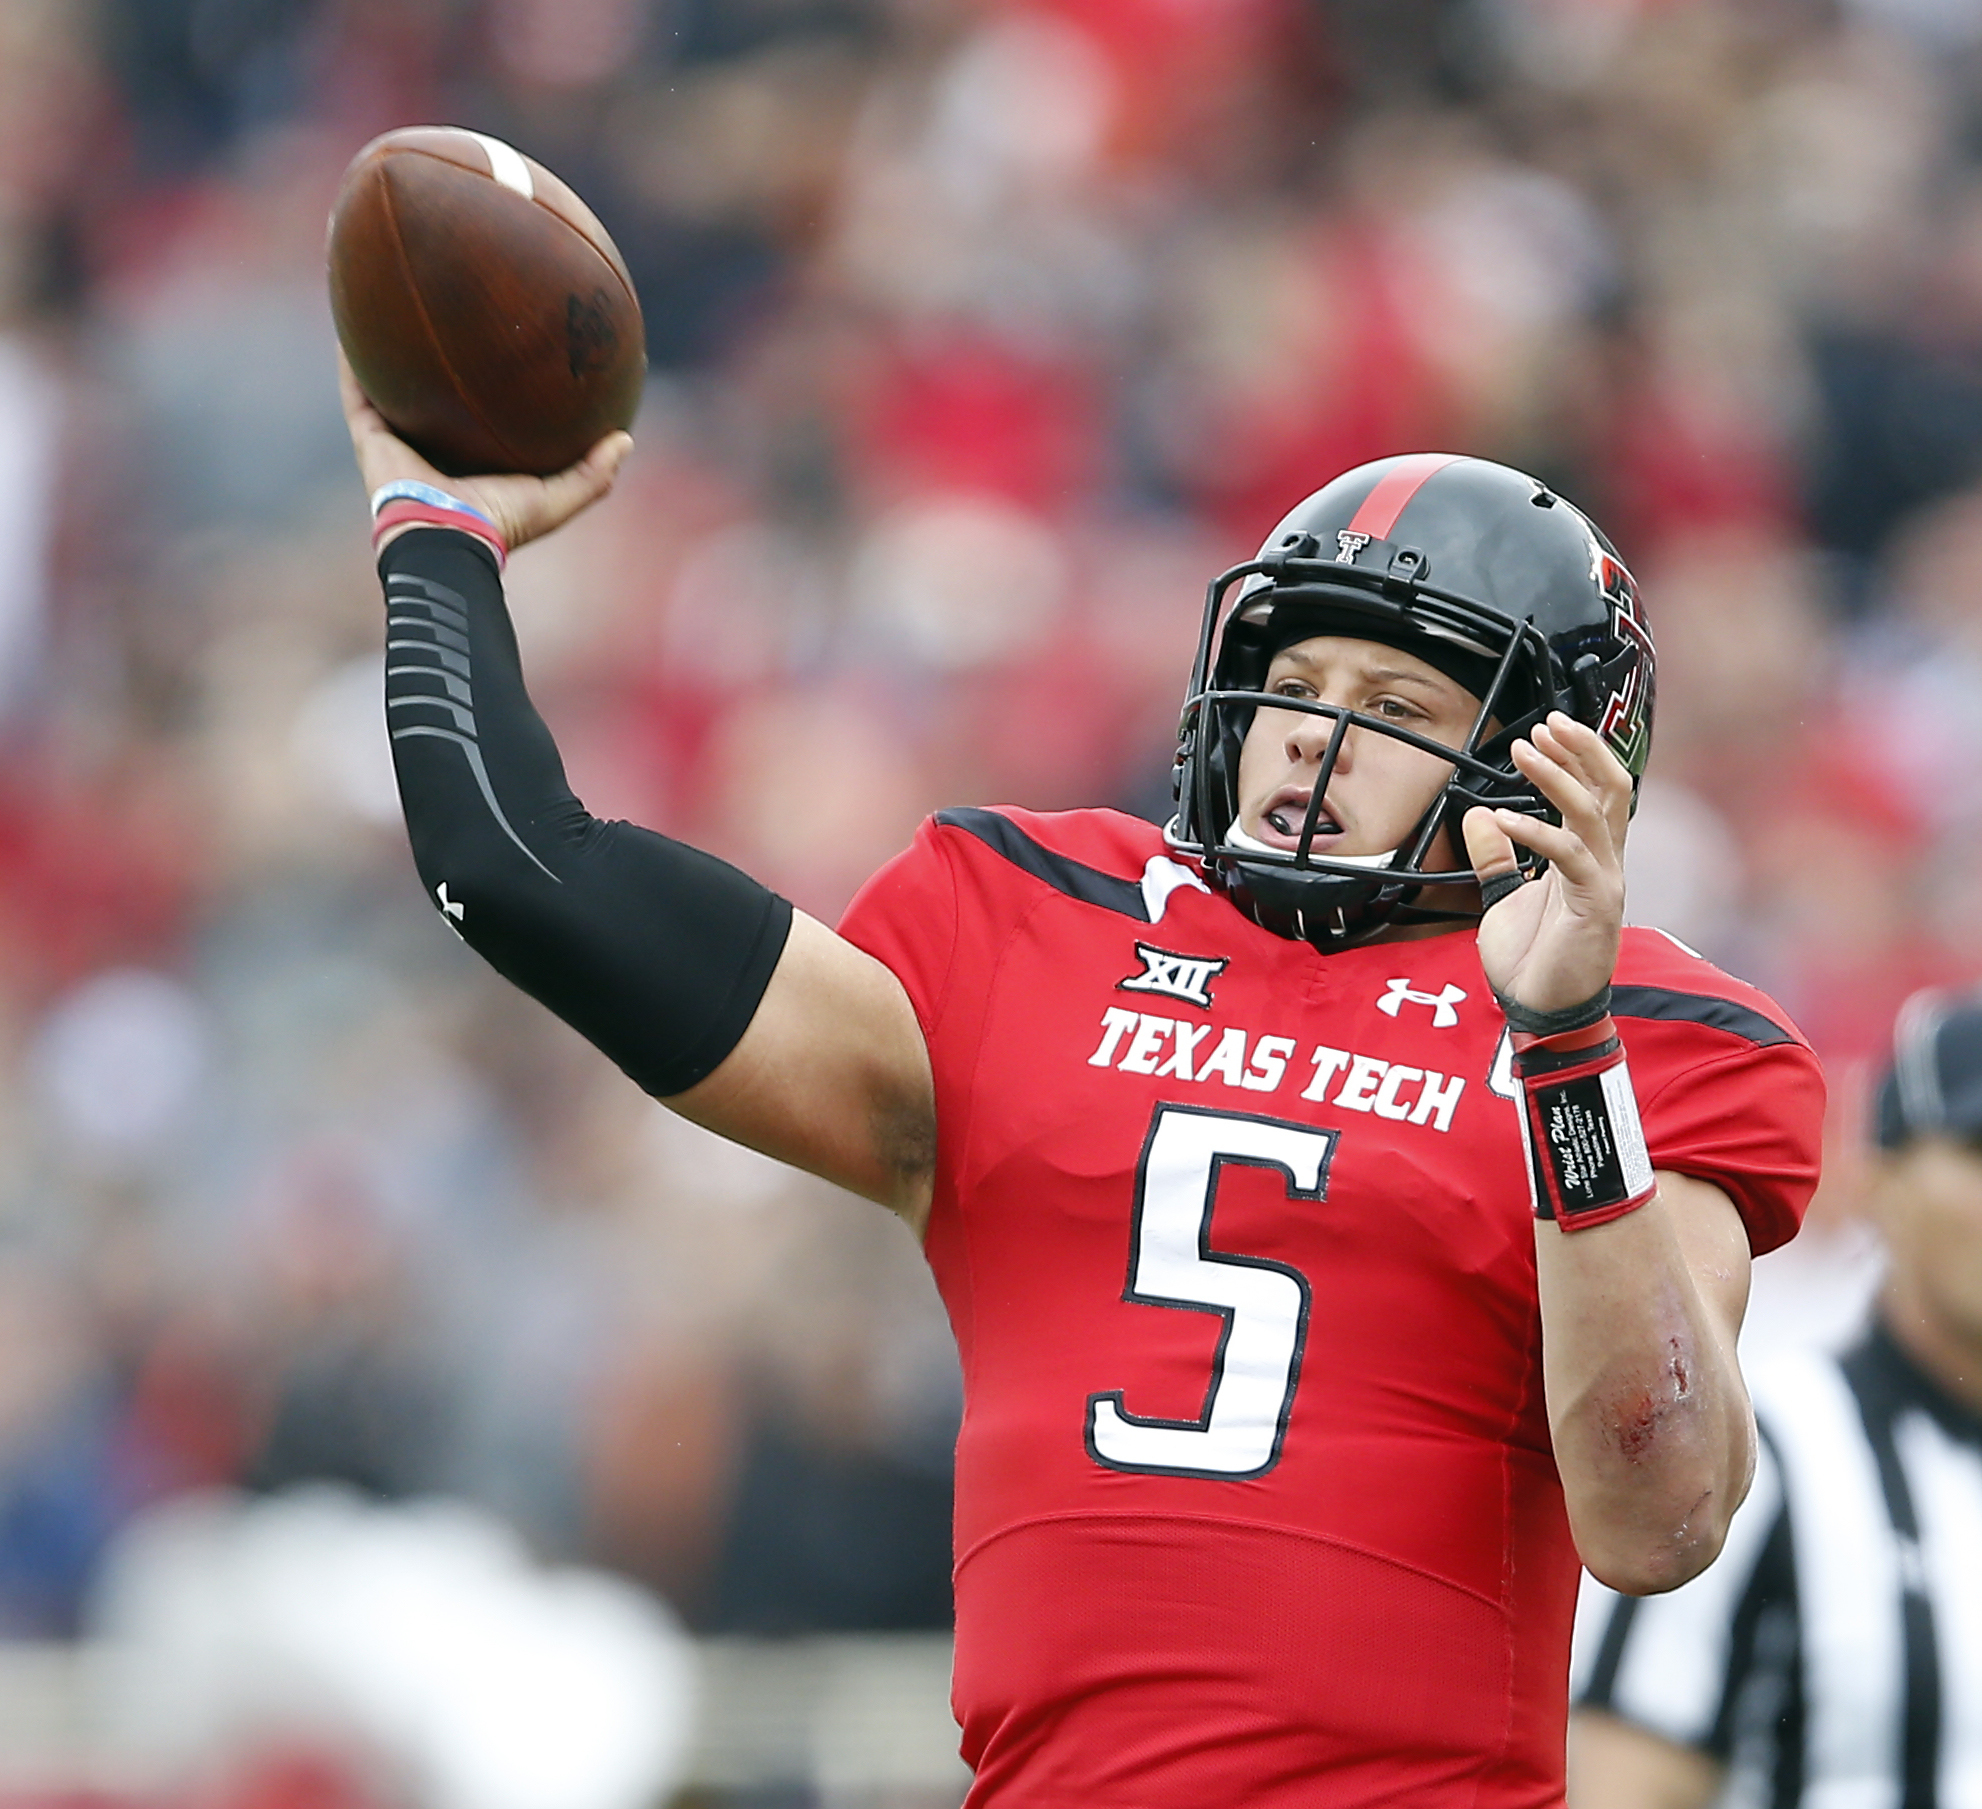 FILE - In this Nov. 5, 2016, file photo, Texas Tech's Patrick Mahomes (5) passes the ball during an NCAA college football game against Texas, in Lubbock, Texas. The closest Texas Tech and junior quarterback Patrick Mahomes will get to a bowl game this sea